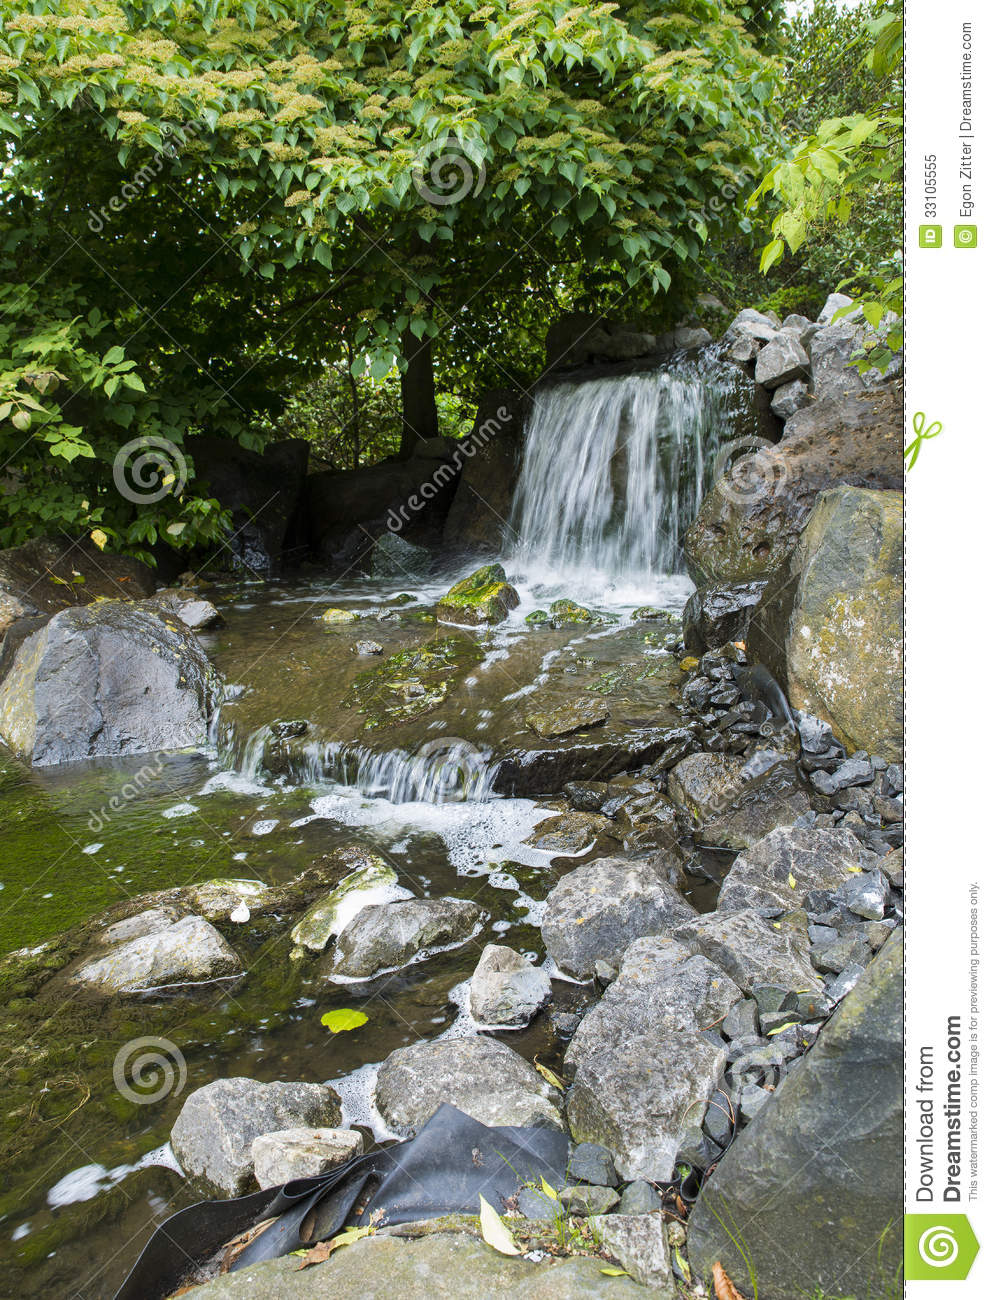 Asian garden with pond royalty free stock photo image for Garden pond stones